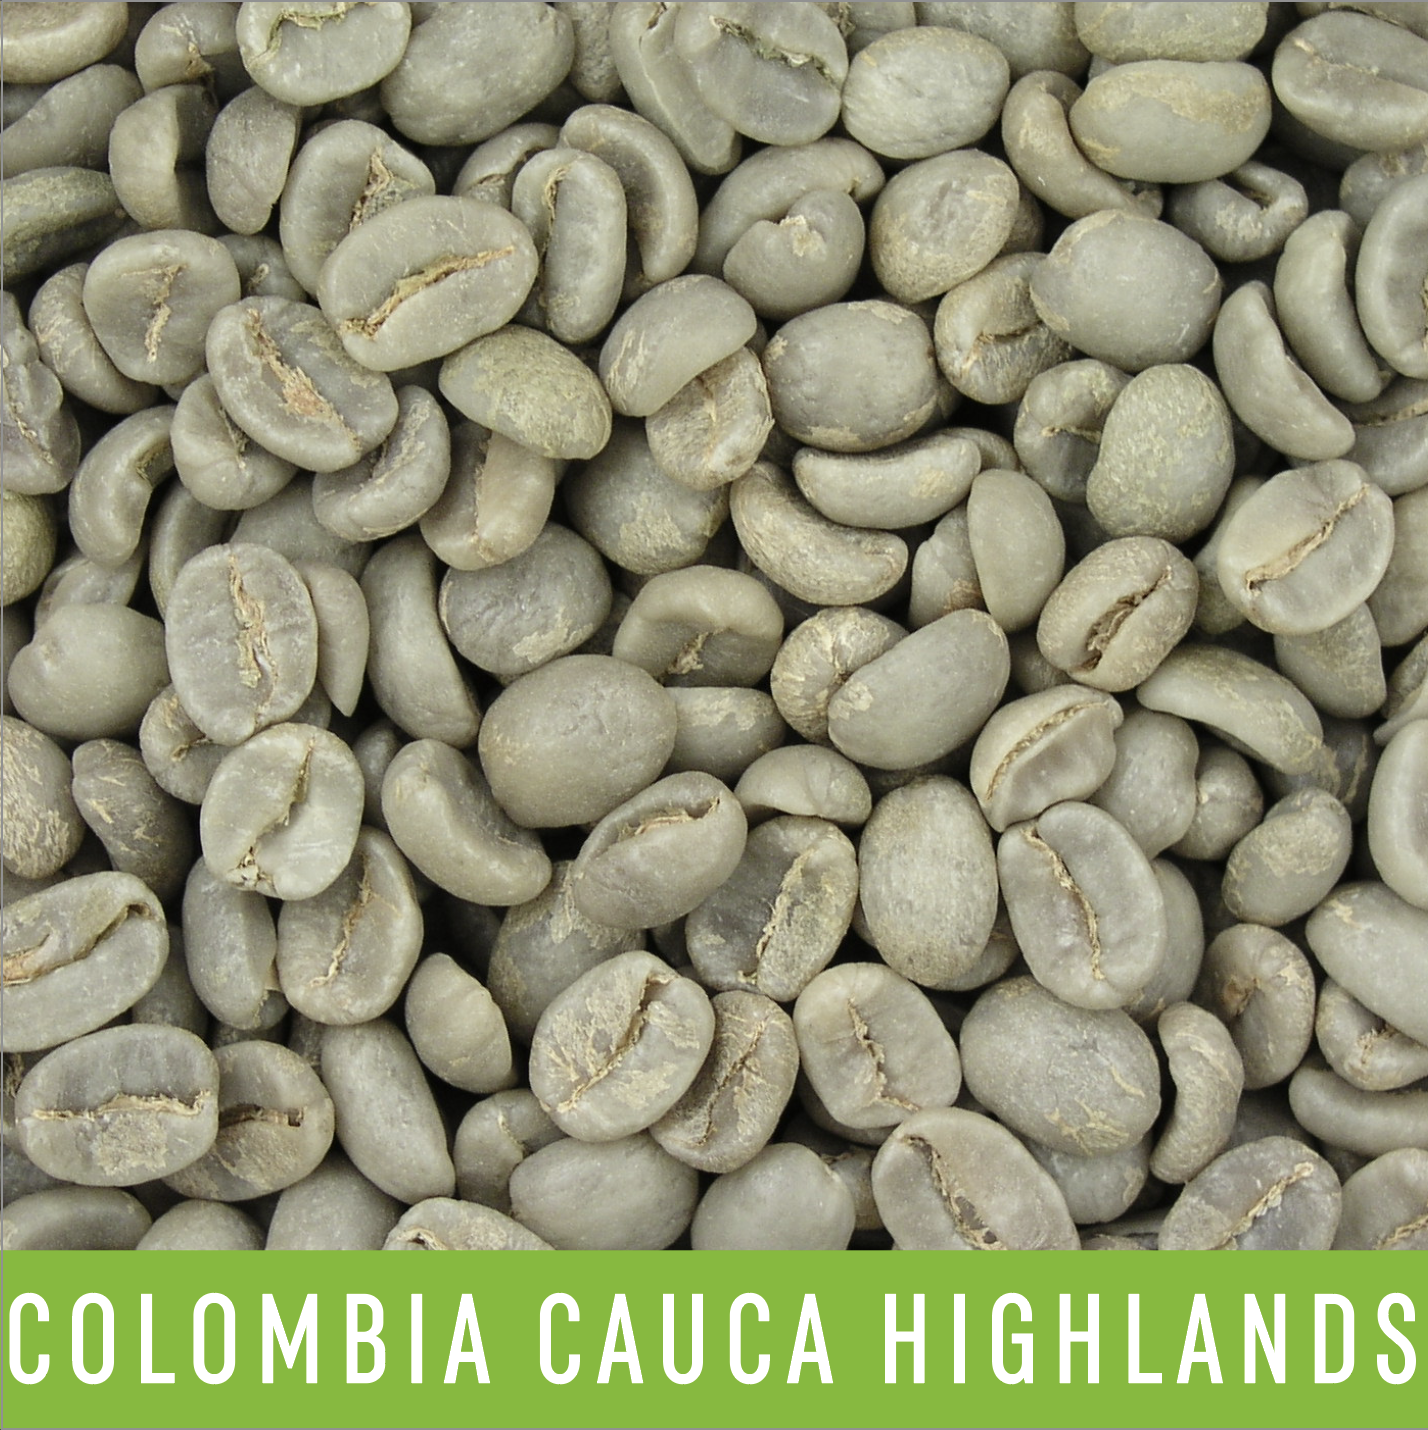 Picture Green Coffee Beans: Colombia Cauca Highlands - 1 LB